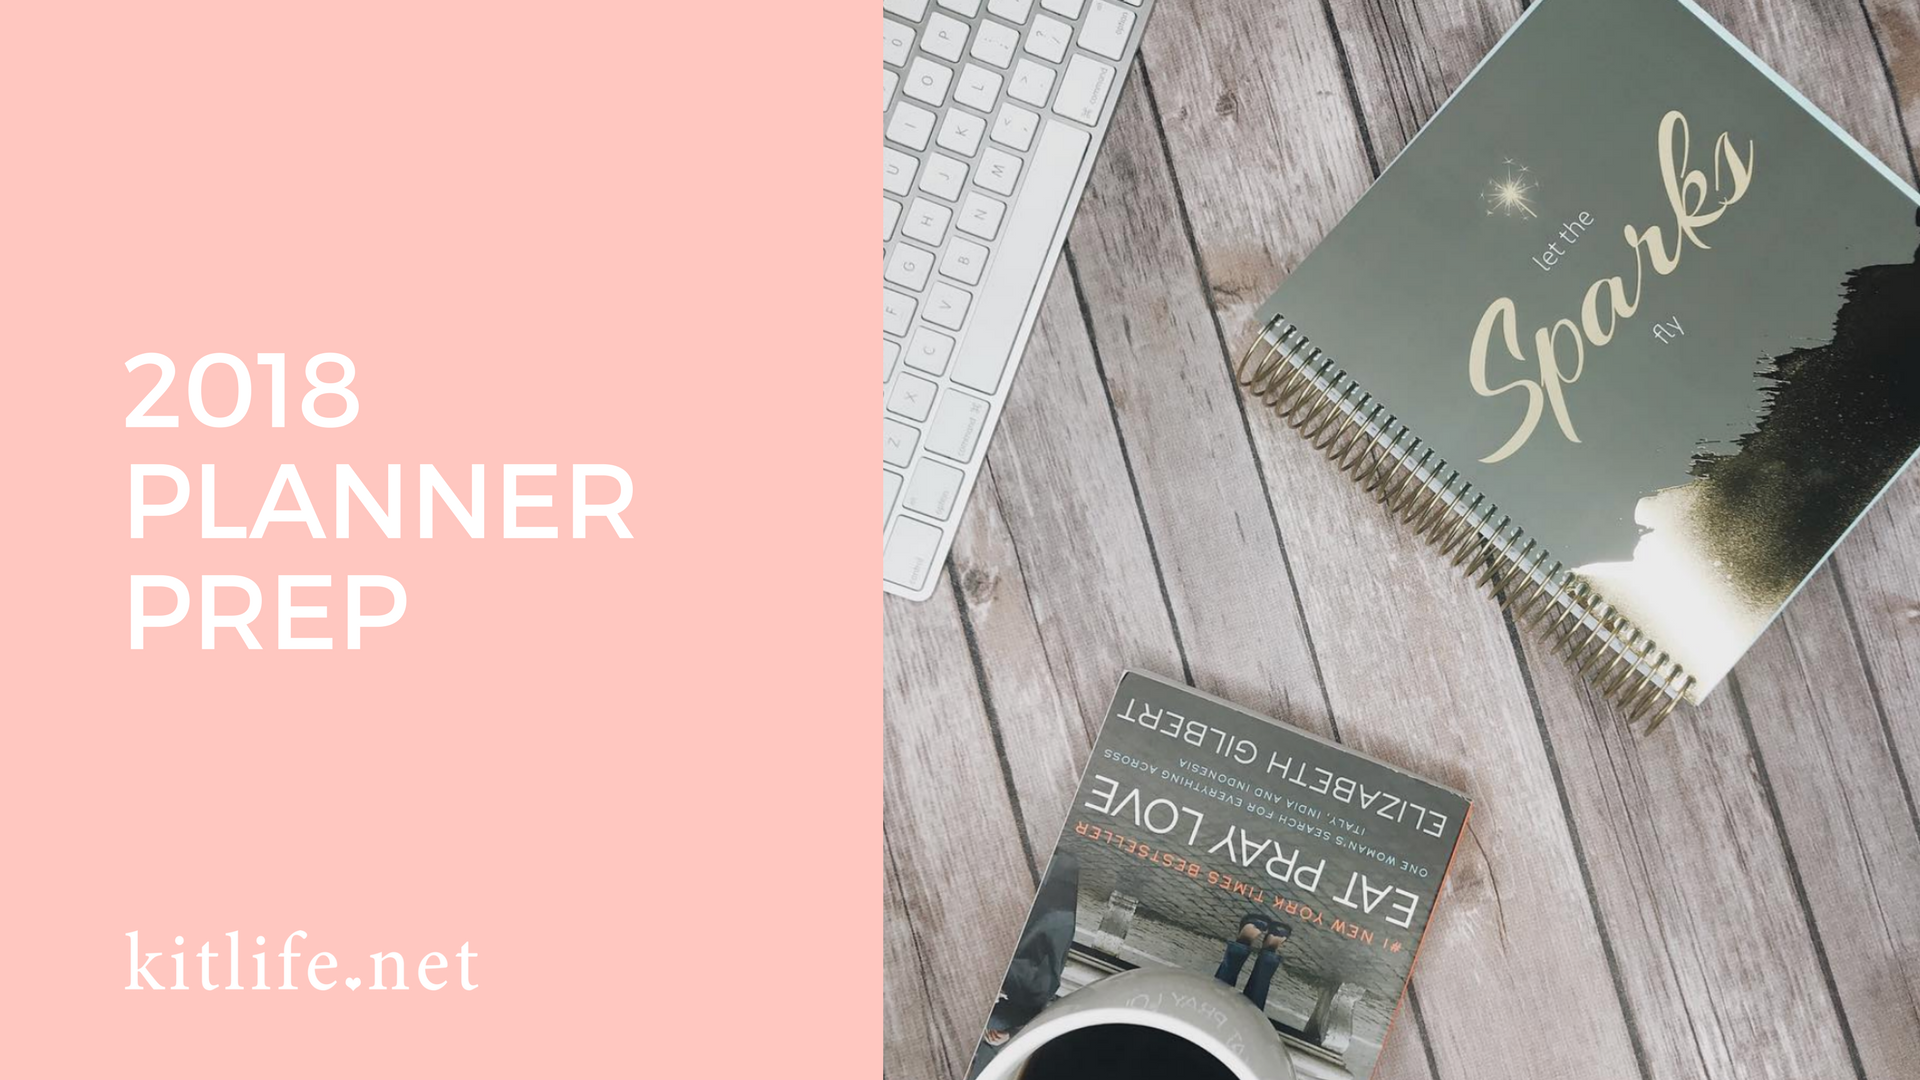 Getting your Life Planner Ready for 2018!